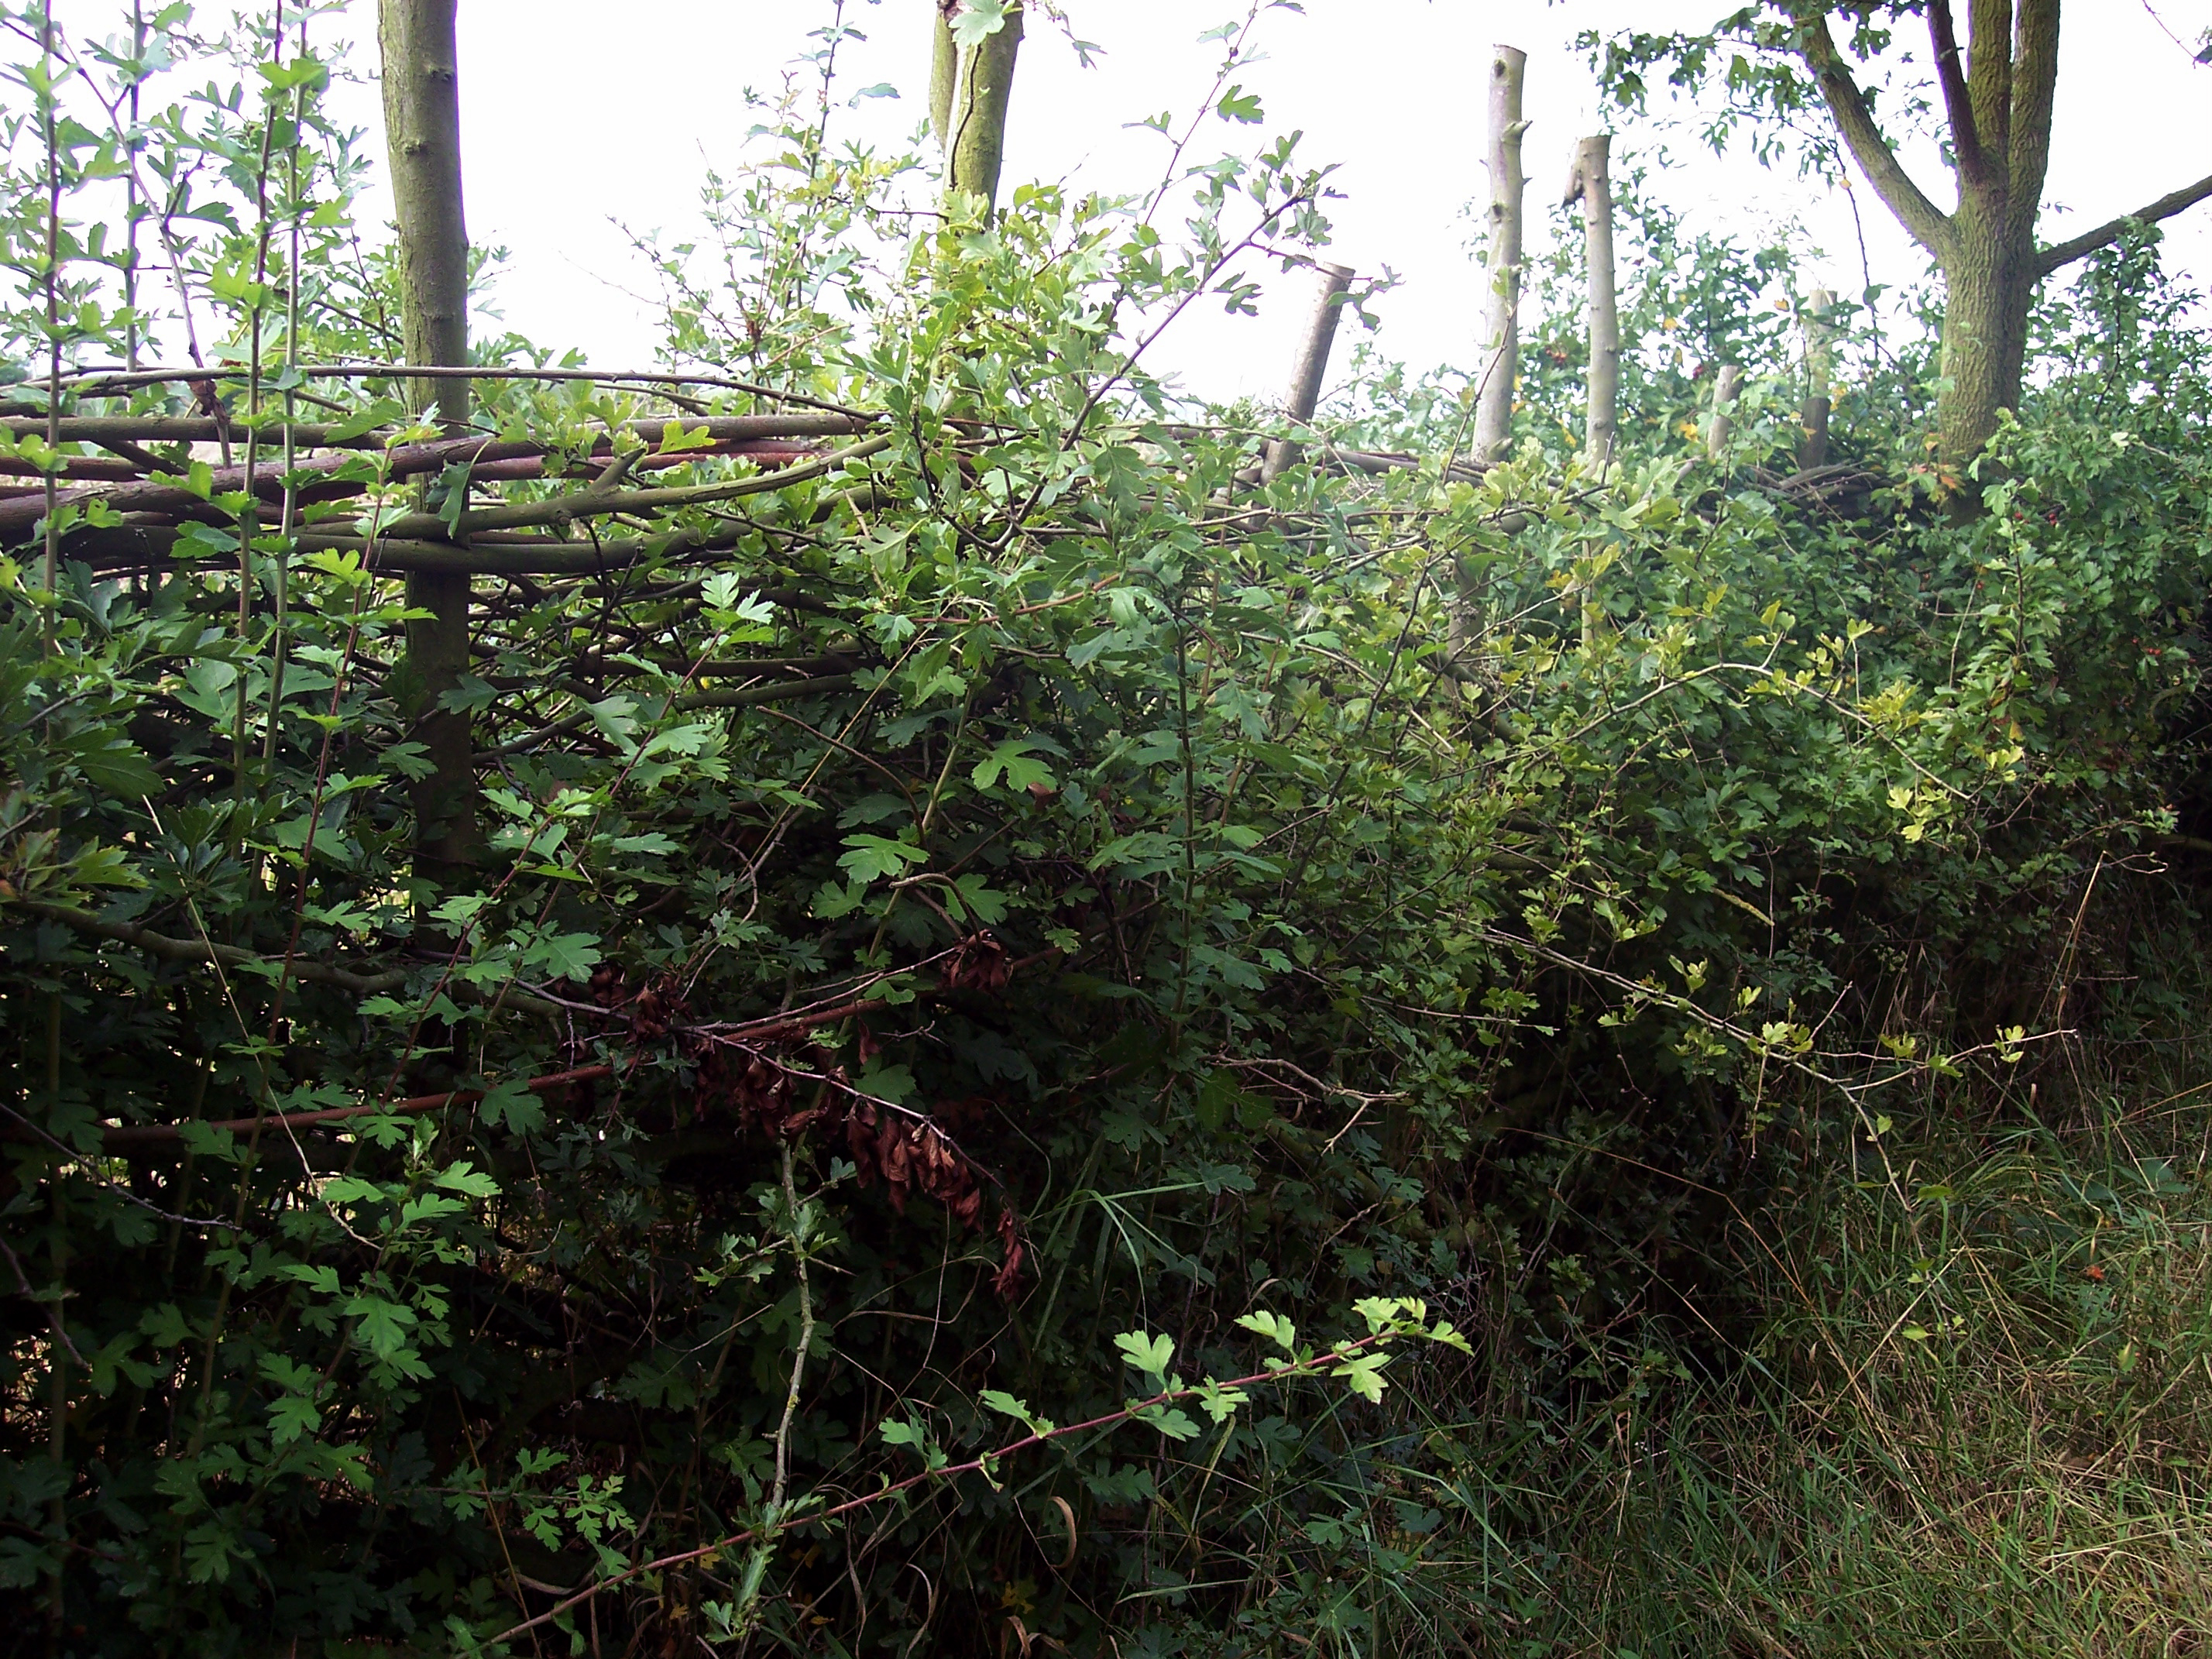 Once established in additon to the species used to construct the hedge such as Hawthorn, blackthorn or dog rose, other plants native to the area can either be planted or allowed to naturally colonize the hedge. These include species of climbing plants such as Wild Clematis which provides food and ne...